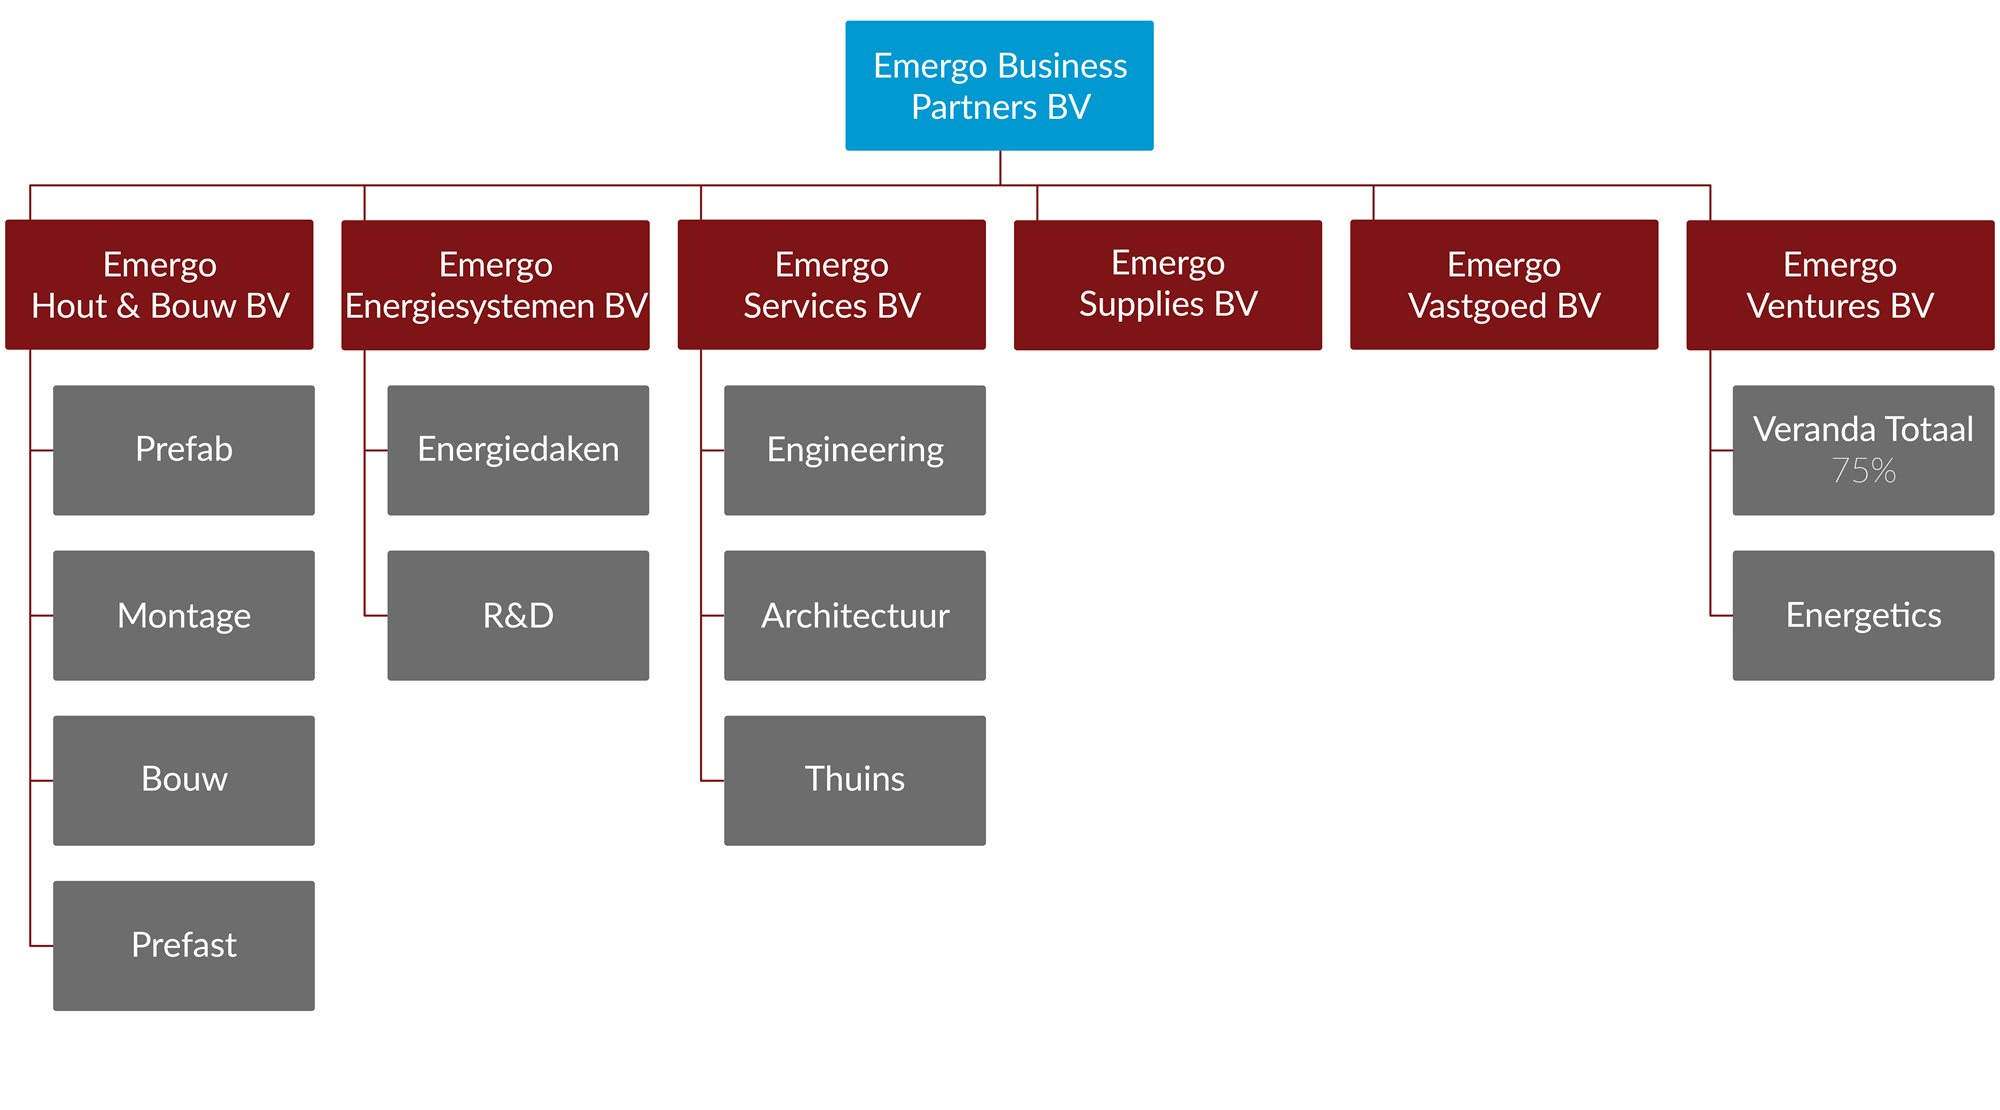 Organogram Emergo Business Partners